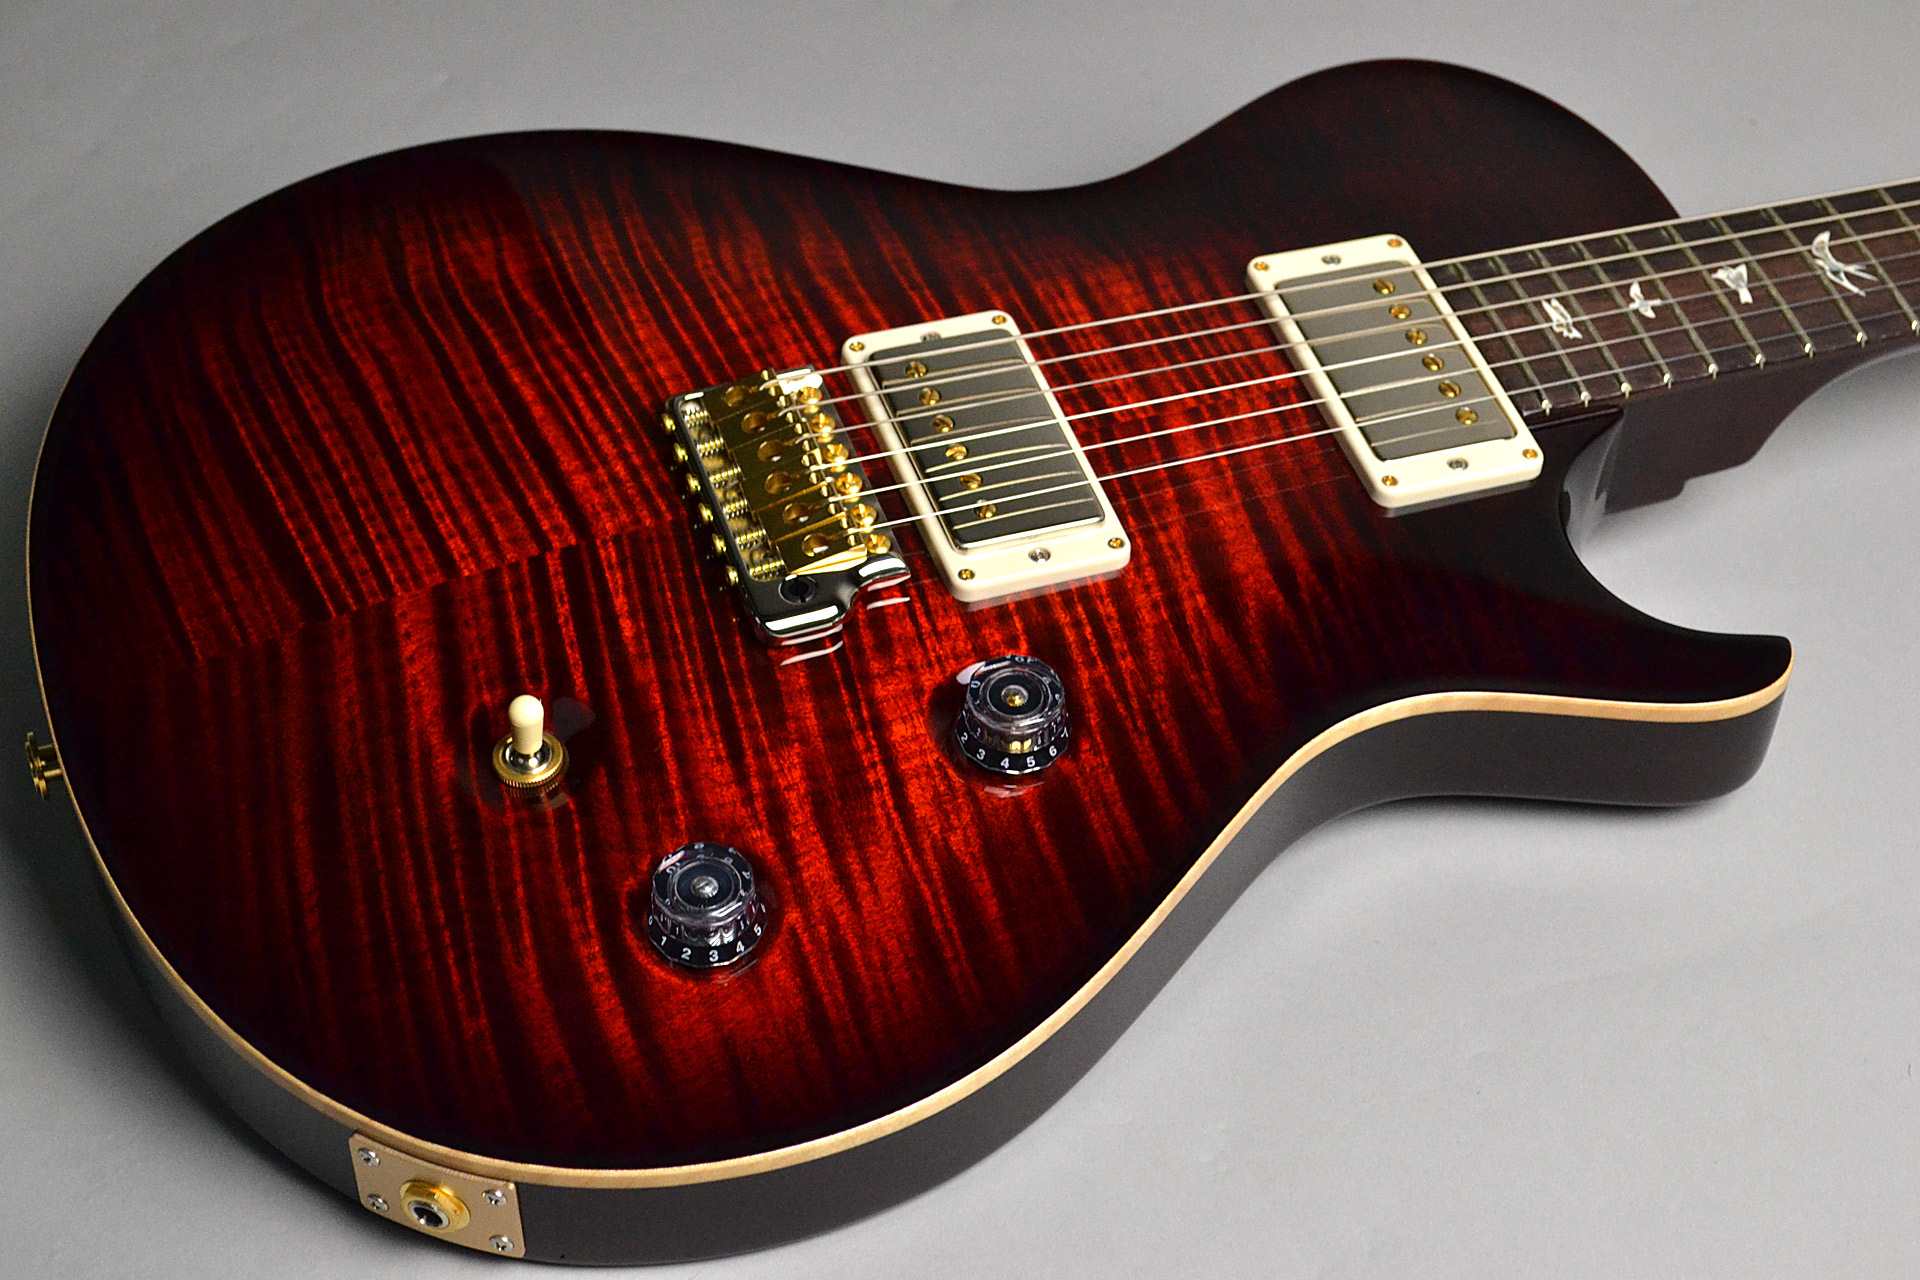 SINGLECUT TREM Wide Fat Neck Wood Library Fire Red Burstのボディトップ-アップ画像